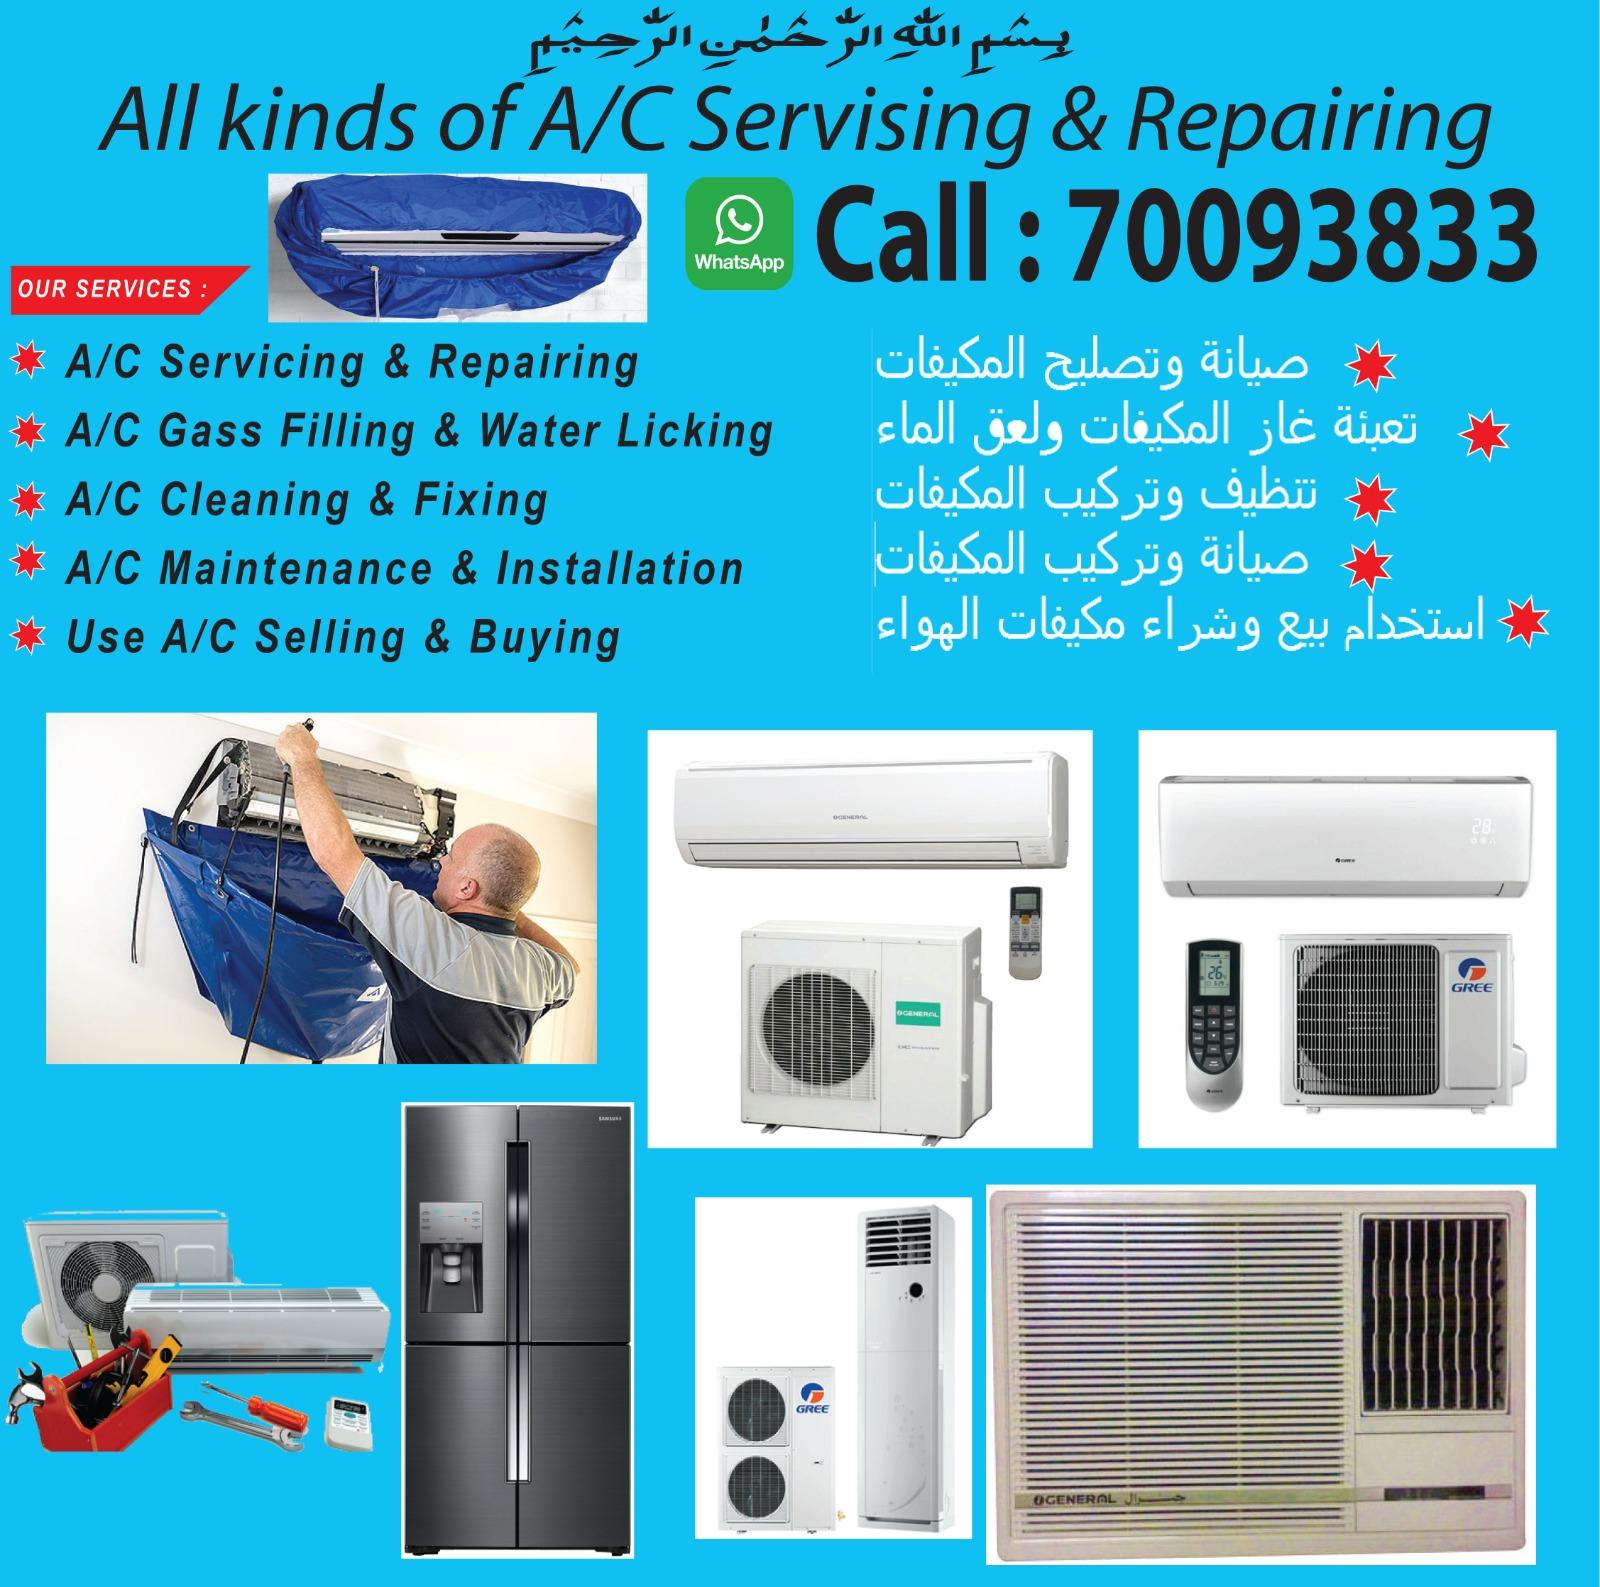 We are all kinds Ac service & Repair & all kind no